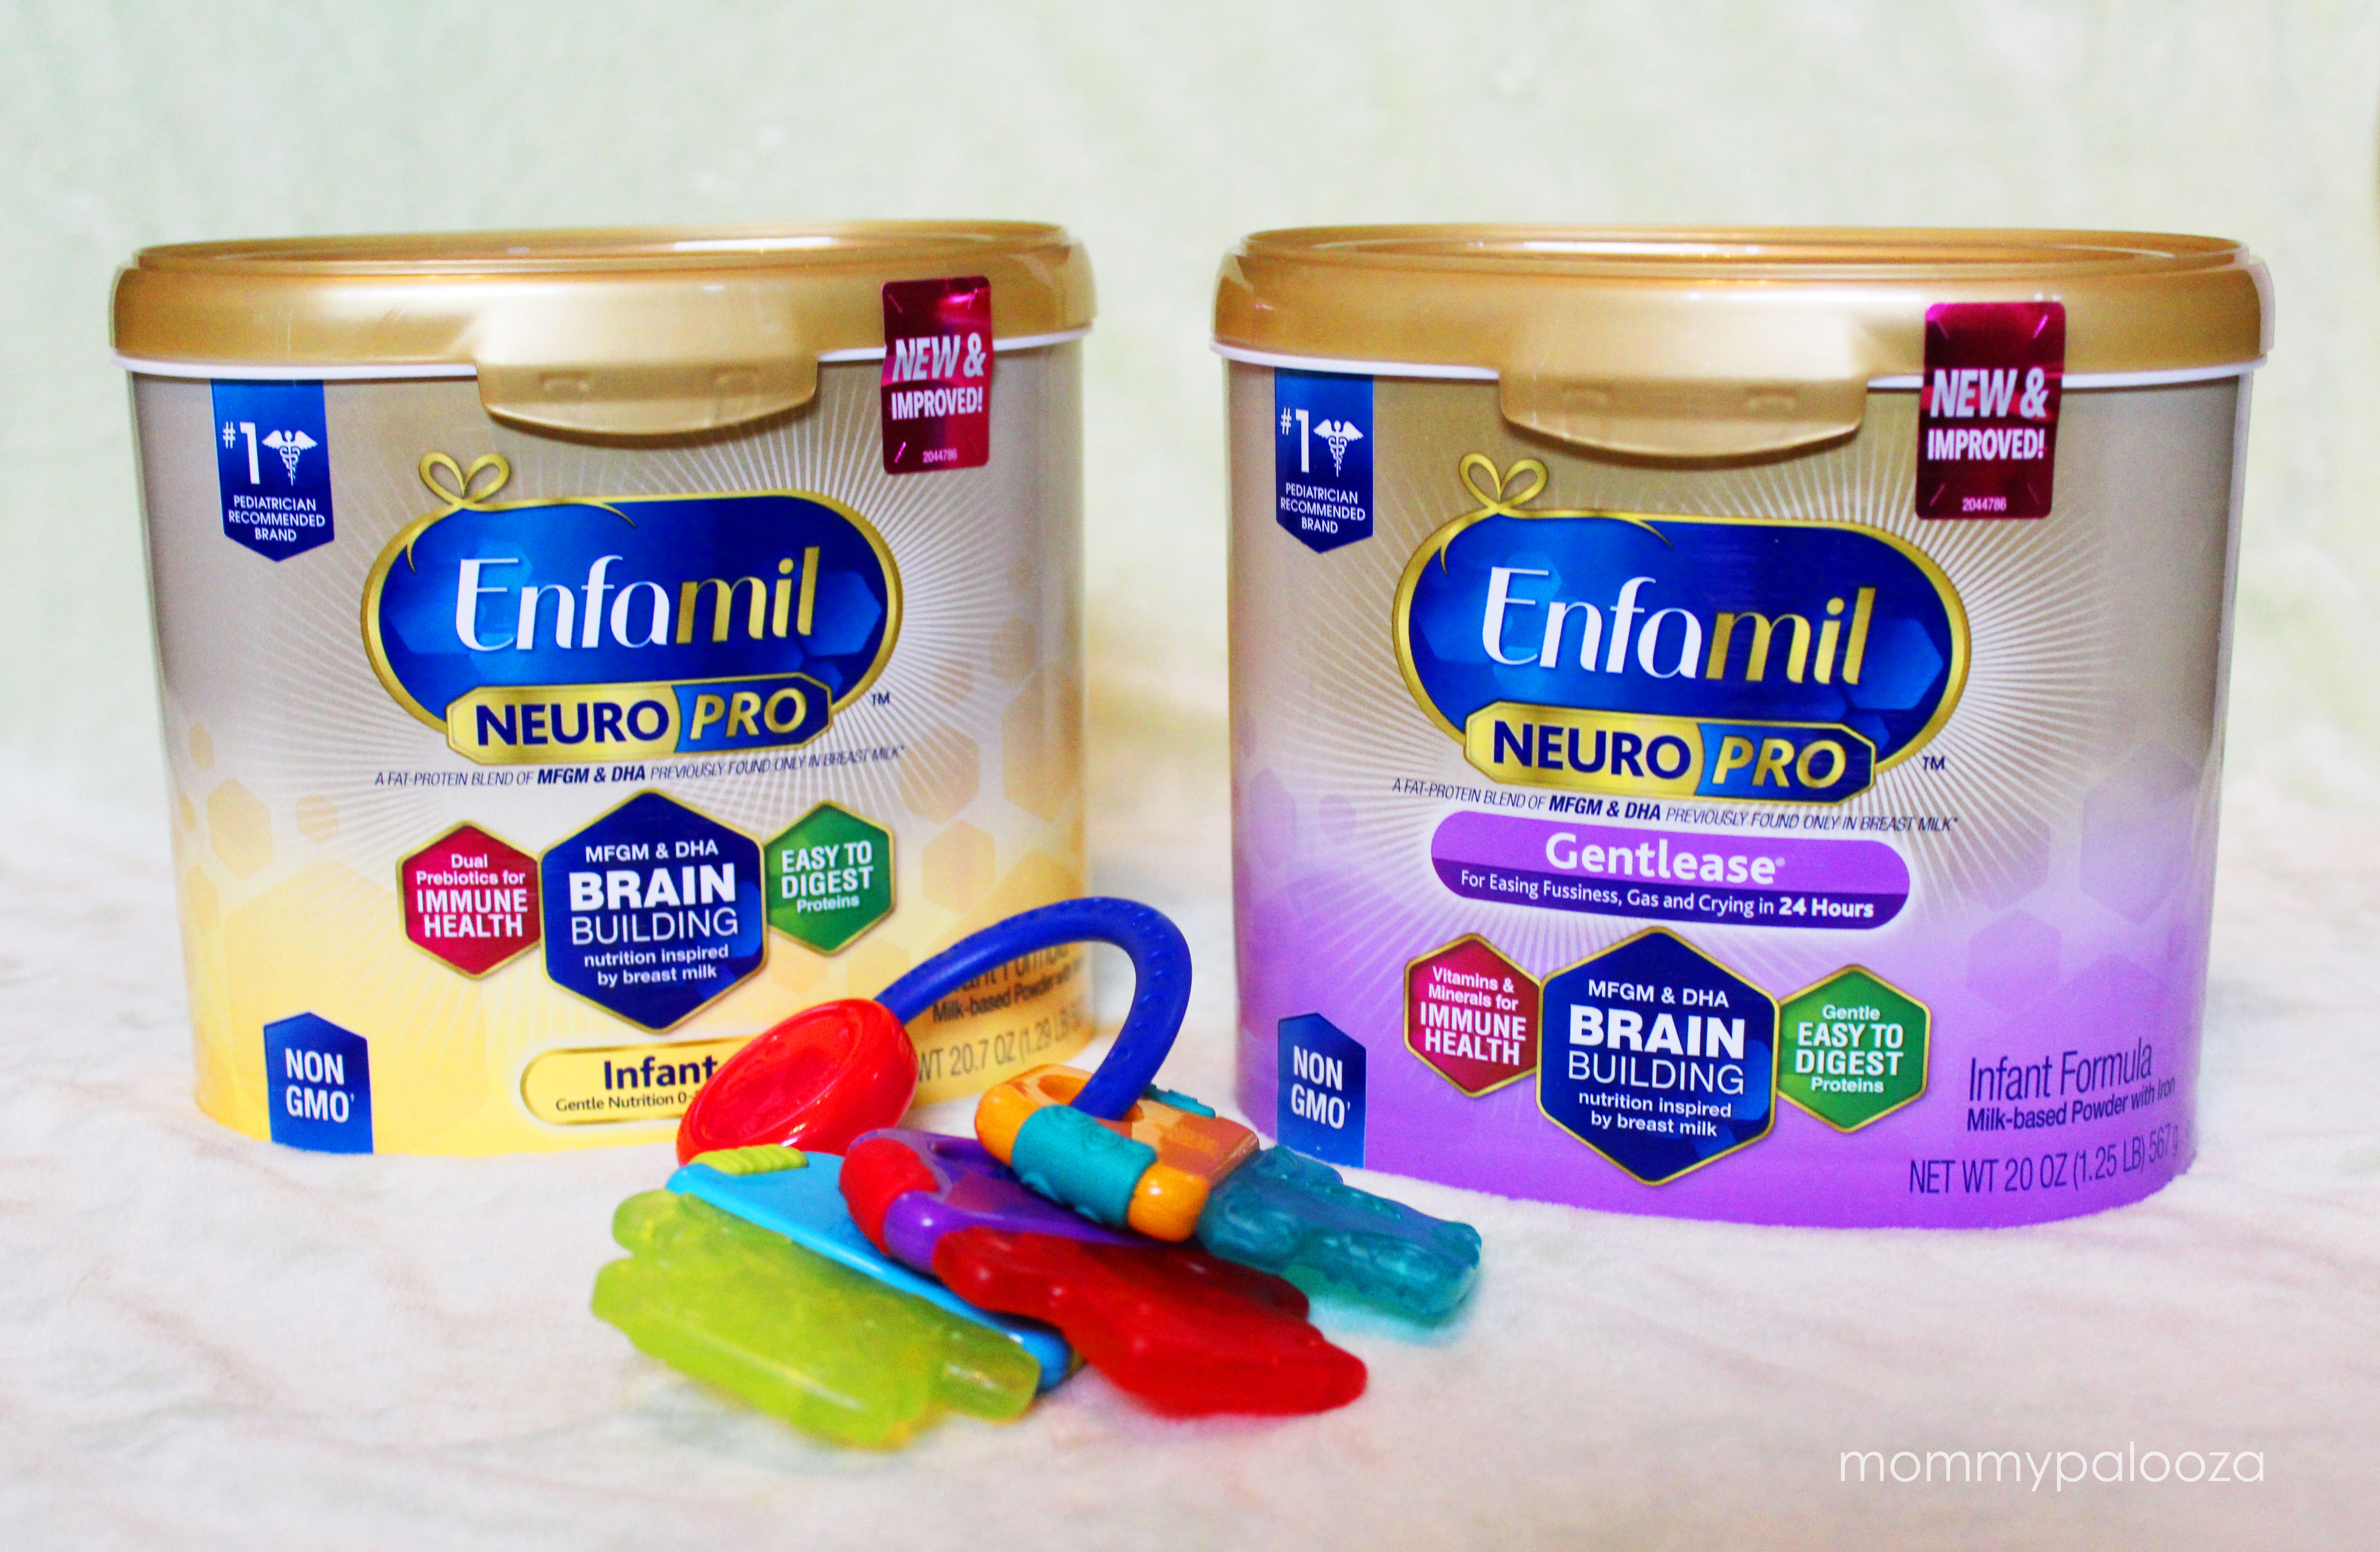 containers of Enfamil NeuroPro next to baby keys